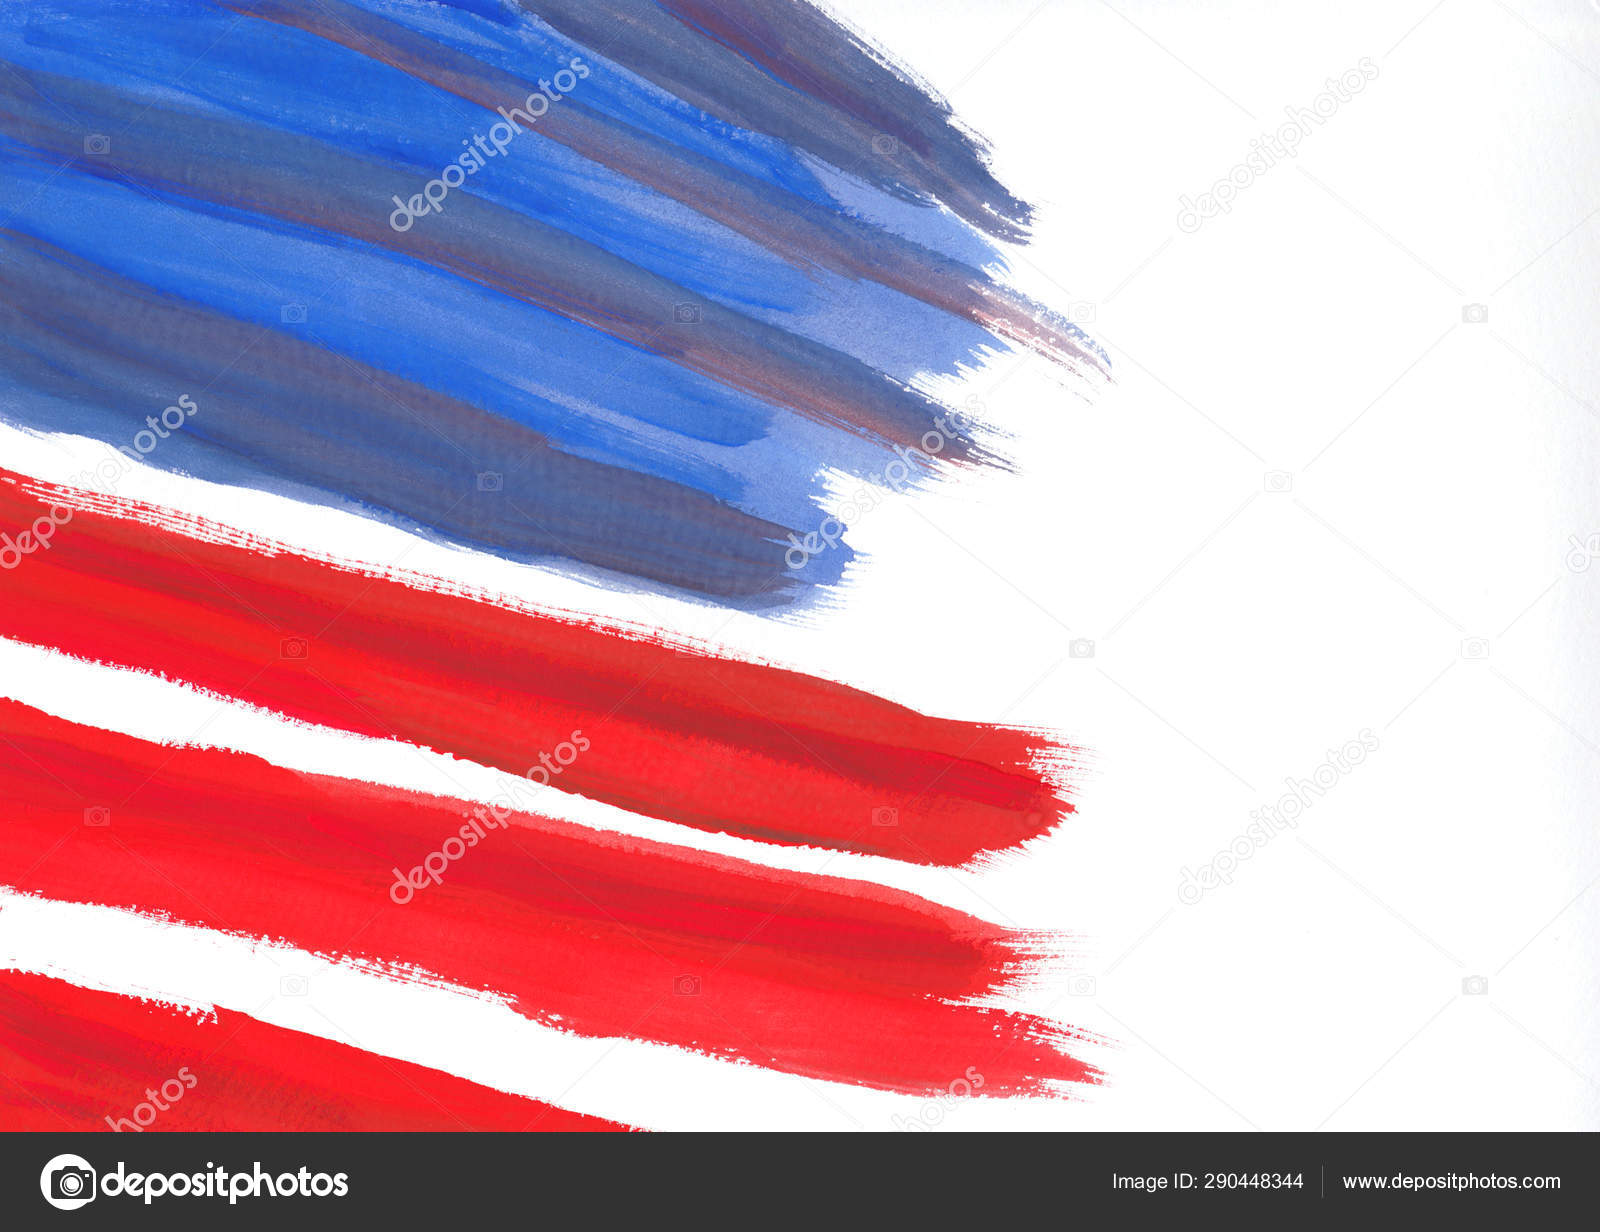 red white and blue watercolor texture flag concept stock photo c jacksonstockphotography 290448344 red white and blue watercolor texture flag concept stock photo c jacksonstockphotography 290448344